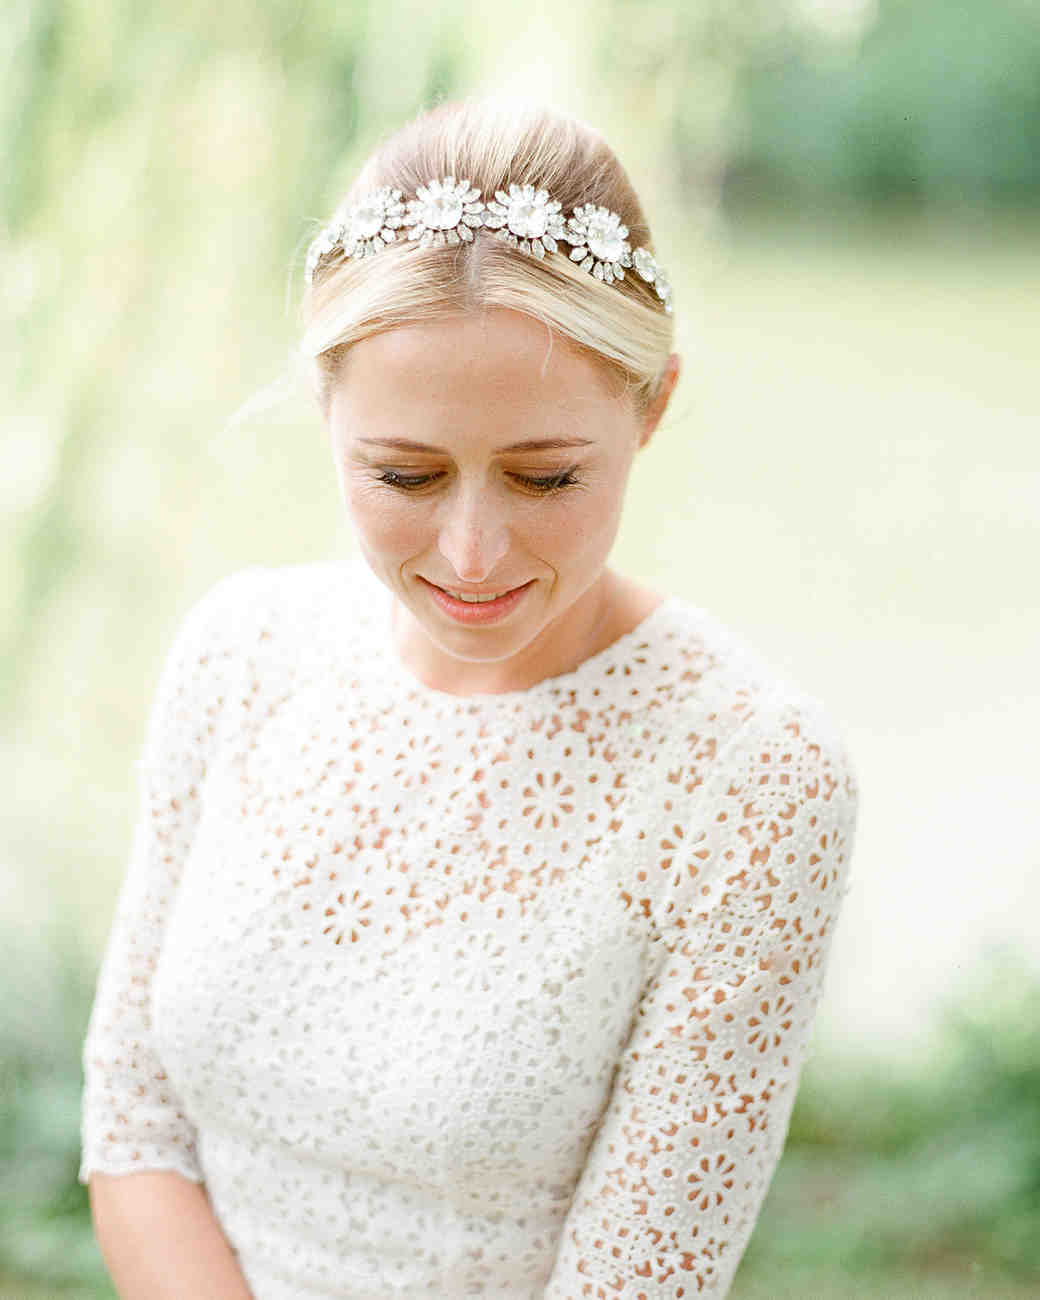 Hairstyle For Halter Neck Wedding Dress: The Best Hairstyles For Every Wedding Dress Neckline